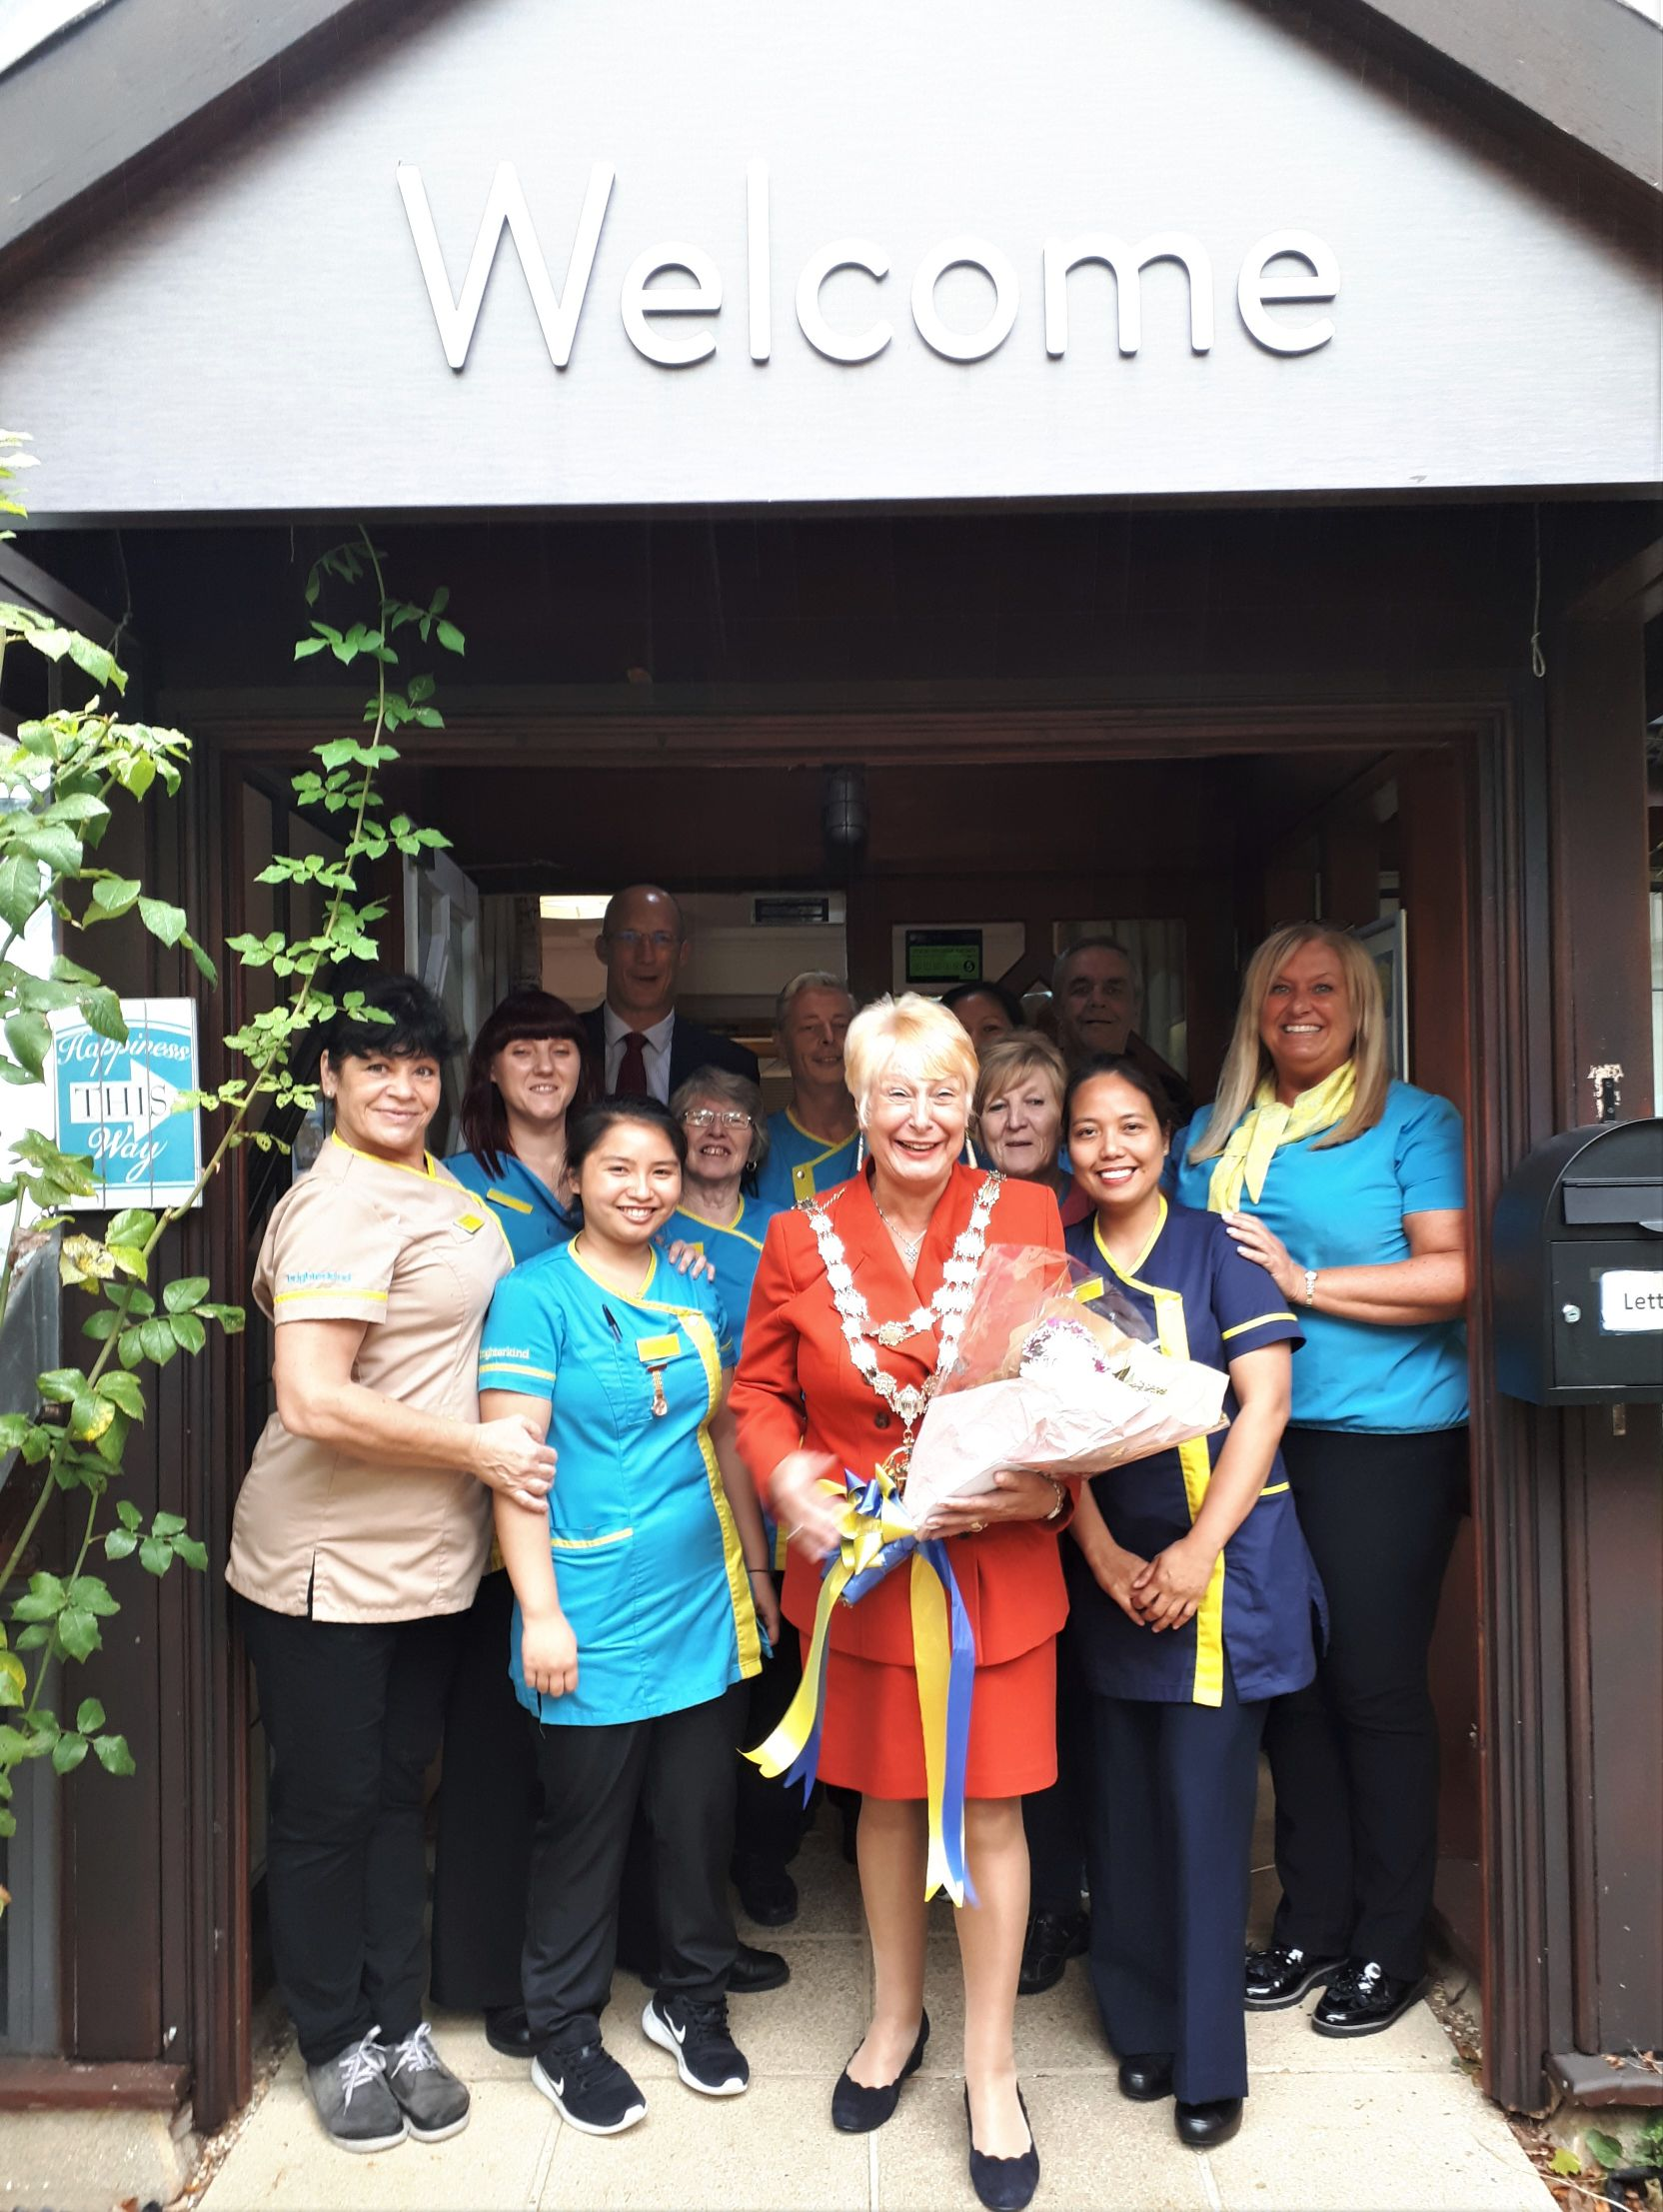 Meyrick Rise Care Home, Bournemouth-The Mayor of Bournemouth, Councillor Susan Phillips surrounded by Meyrick Rise team members